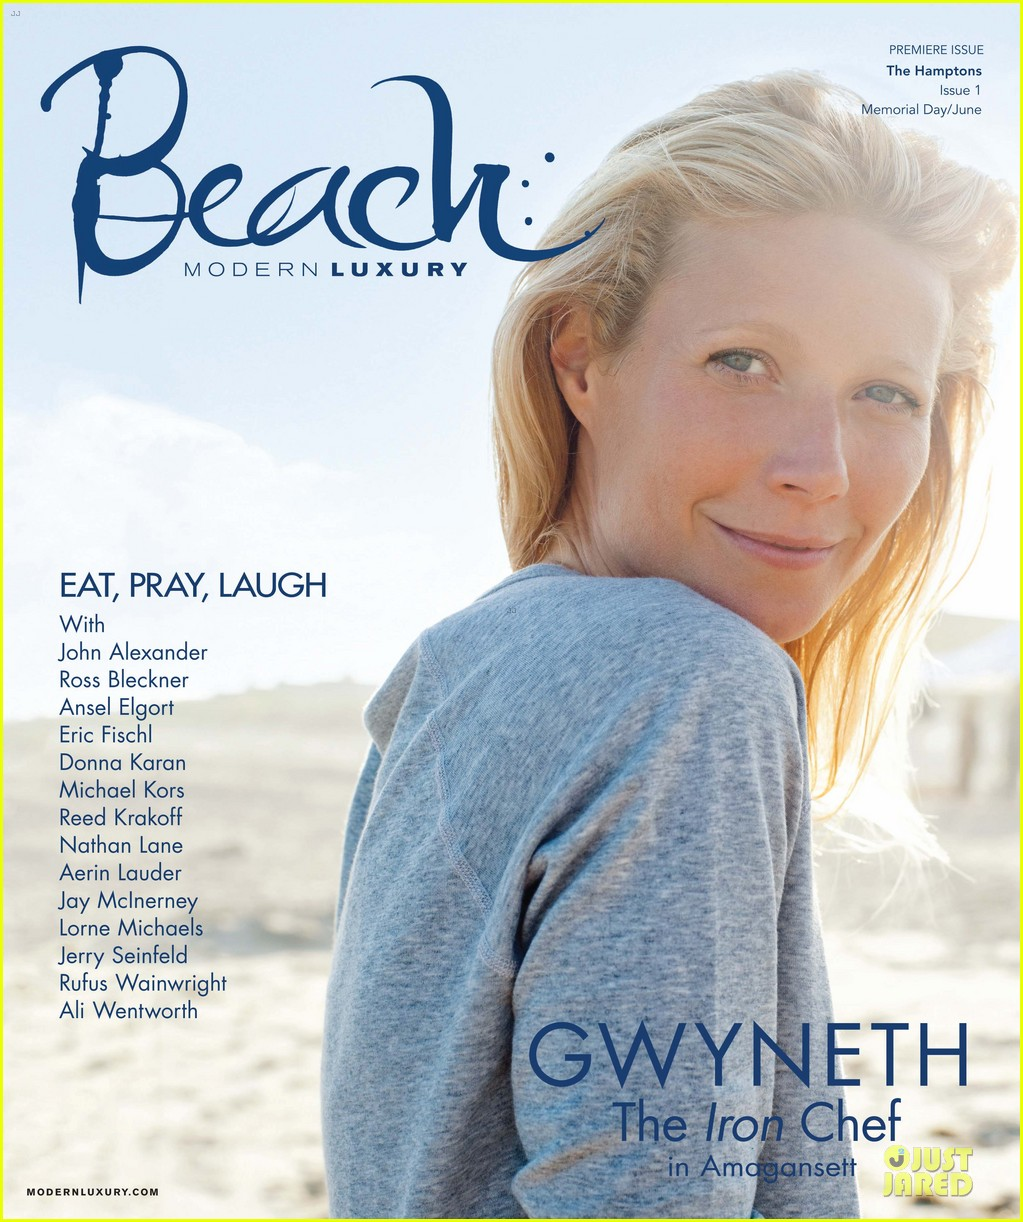 gwyneth paltrow debuts beach magazine 01.